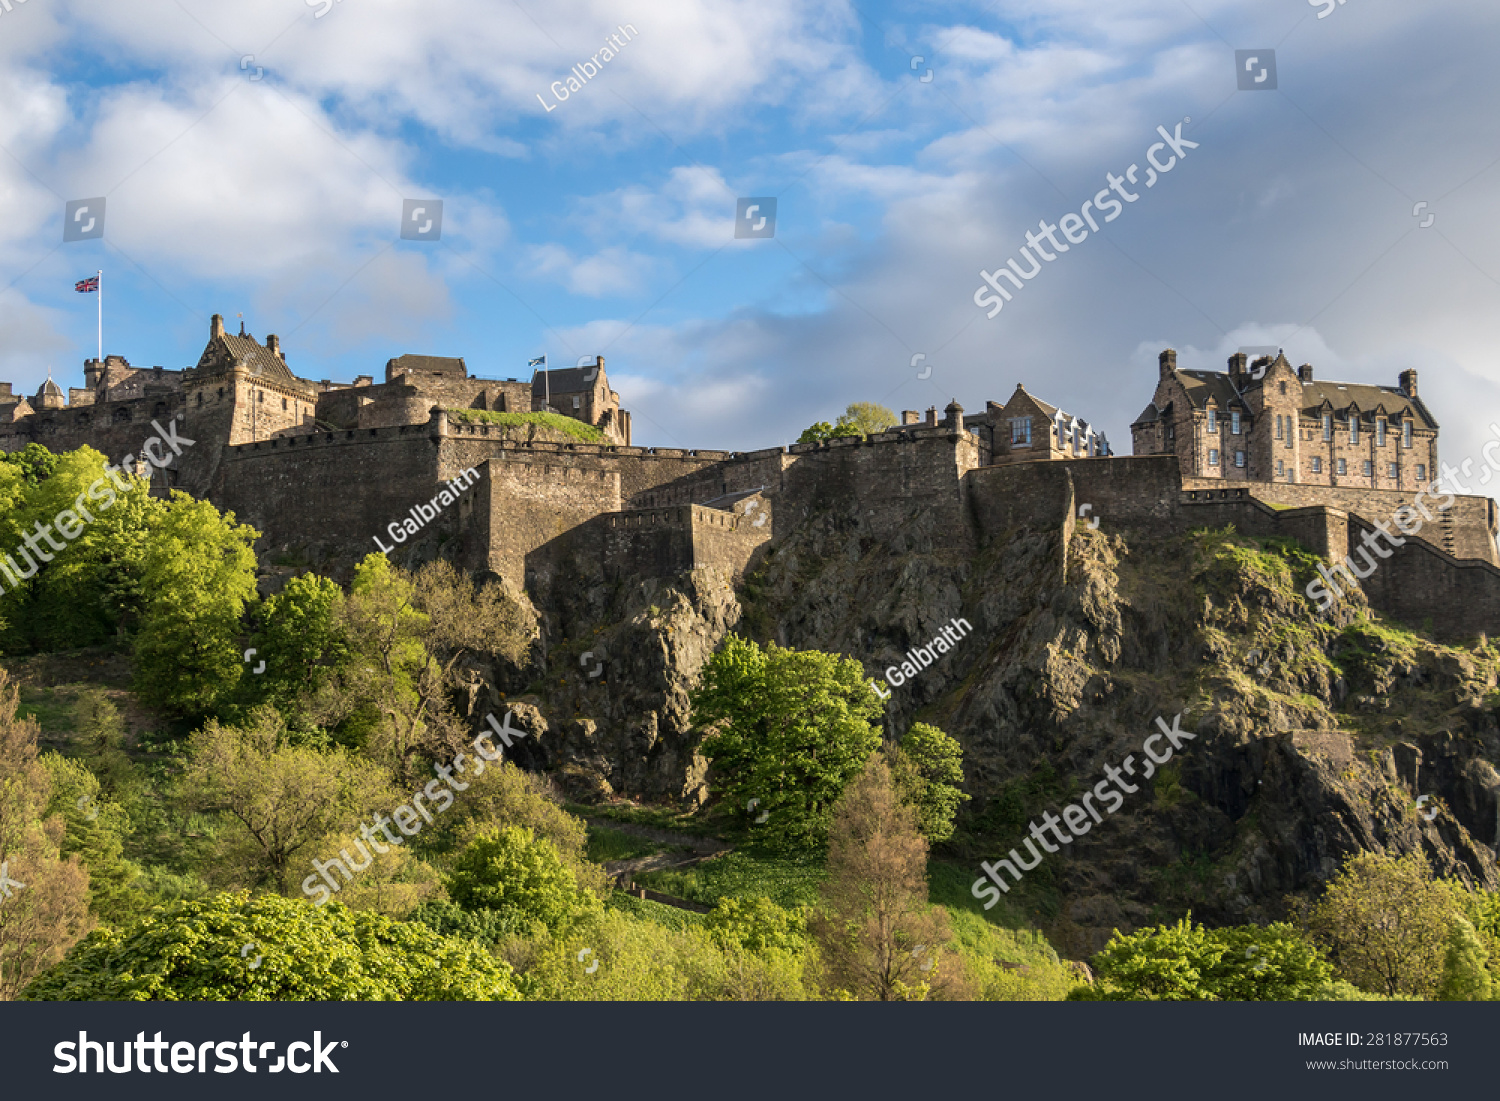 stock edinburgh castle - photo #37